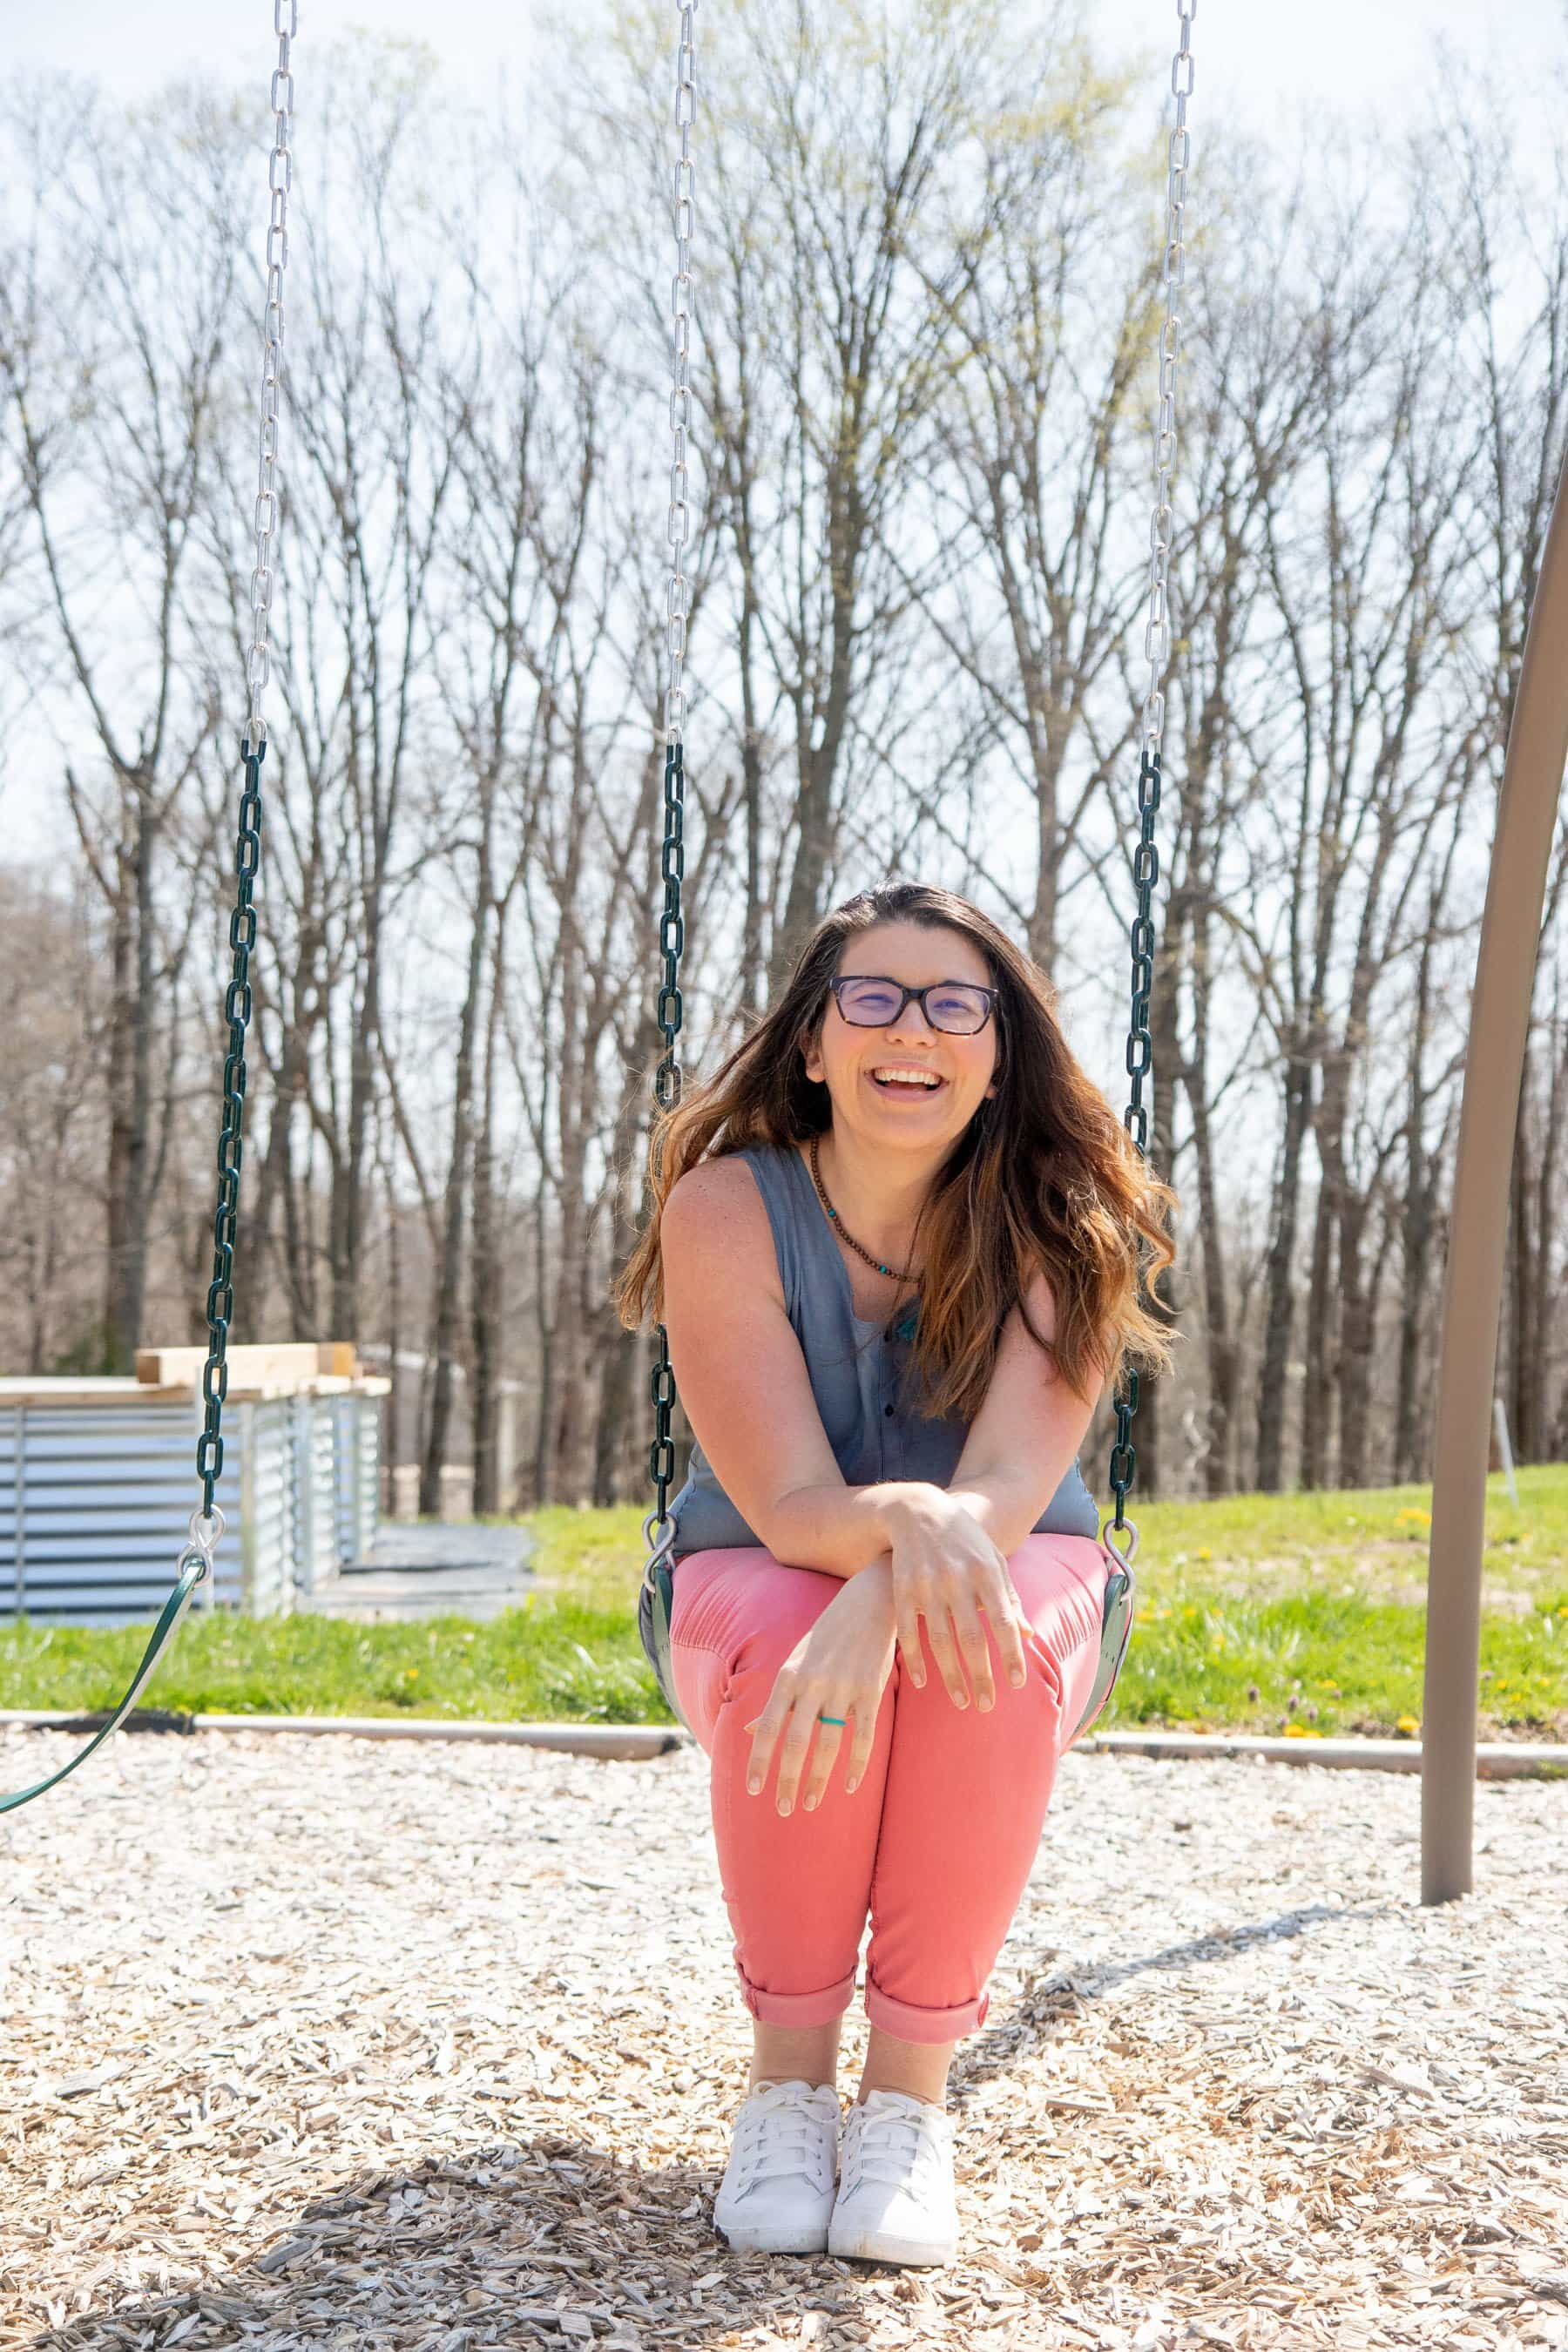 Woman sitting on a swing outside, smiling